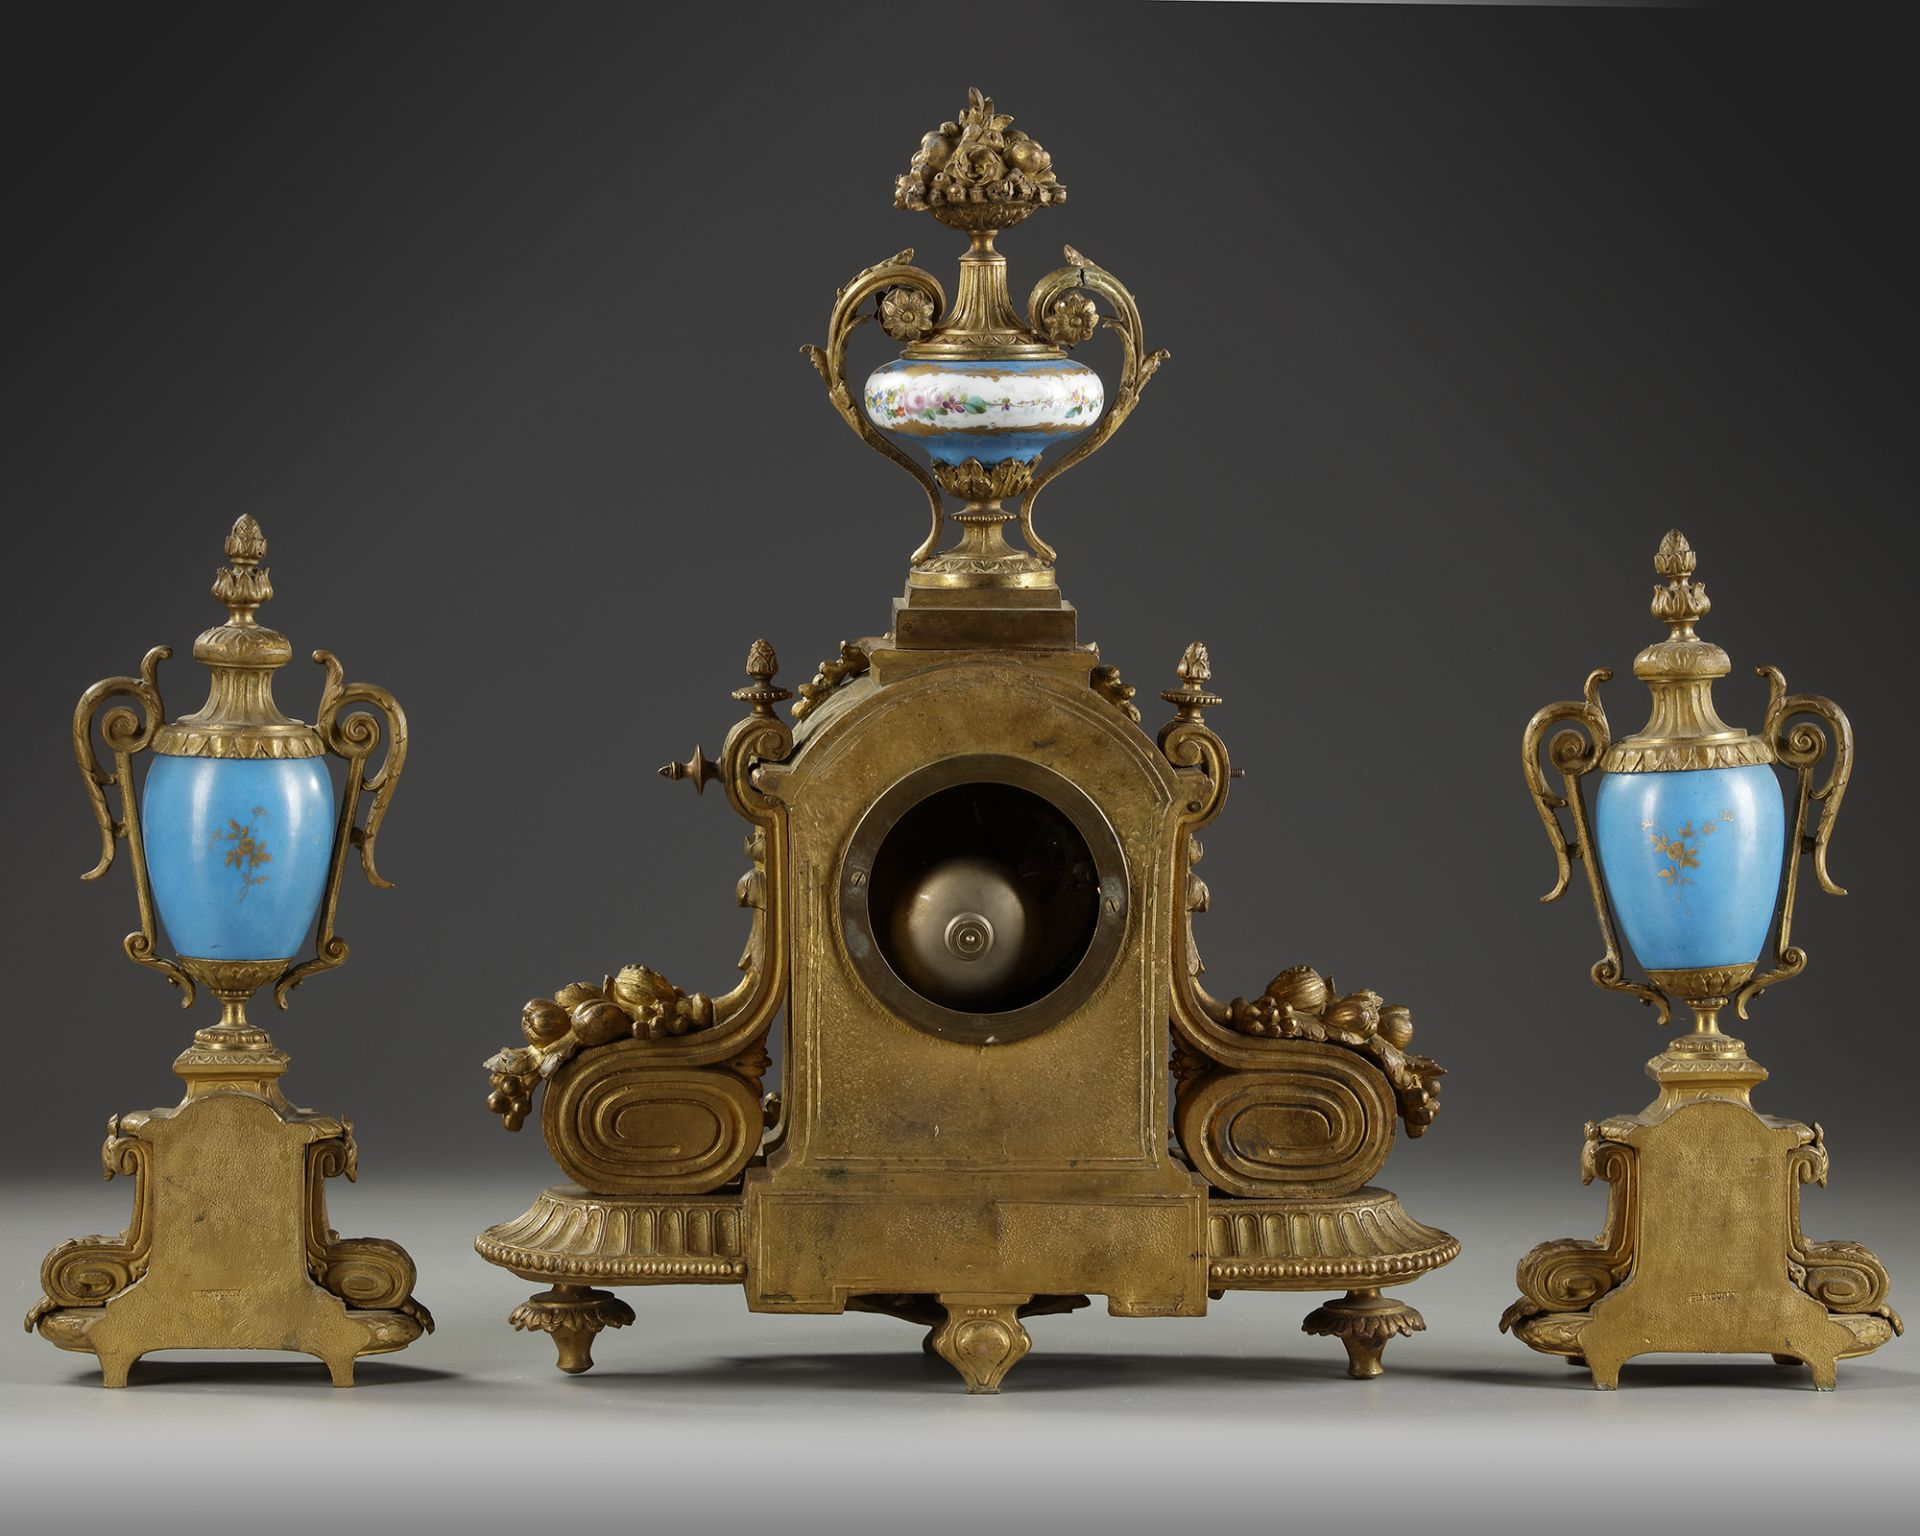 A FRENCH CLOCK SET, 19TH CENTURY - Image 3 of 3